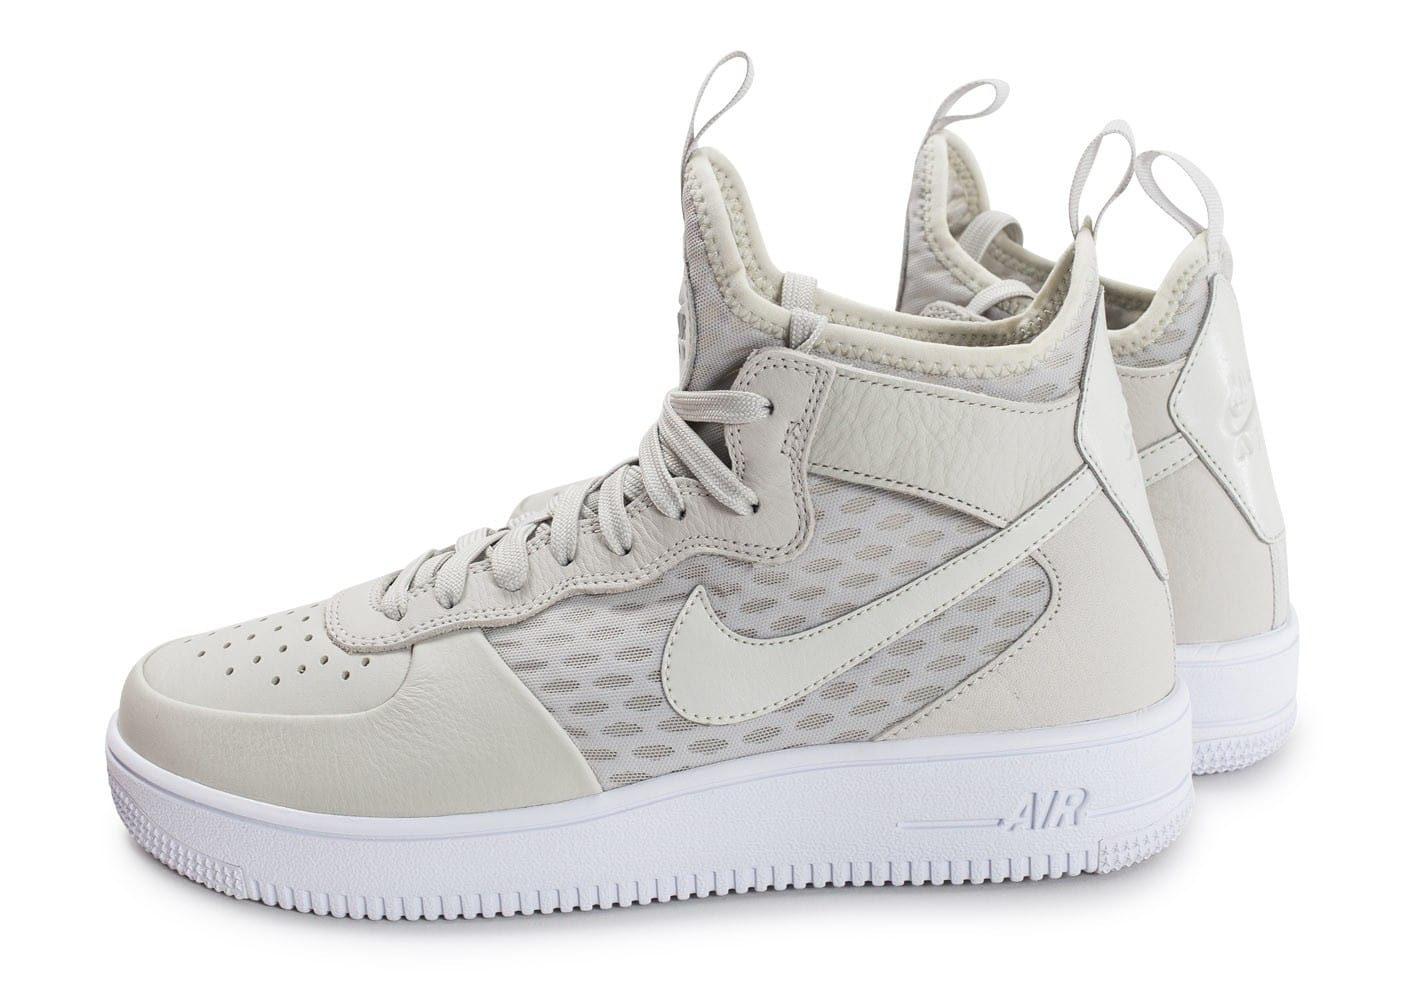 buy popular cbb49 d5d1c Nike Air Force 1 Ultraforce Mid Light Bone Gris - Chaussures Basket  montante Homme GH8HUA1Z - destrainspourtous.fr